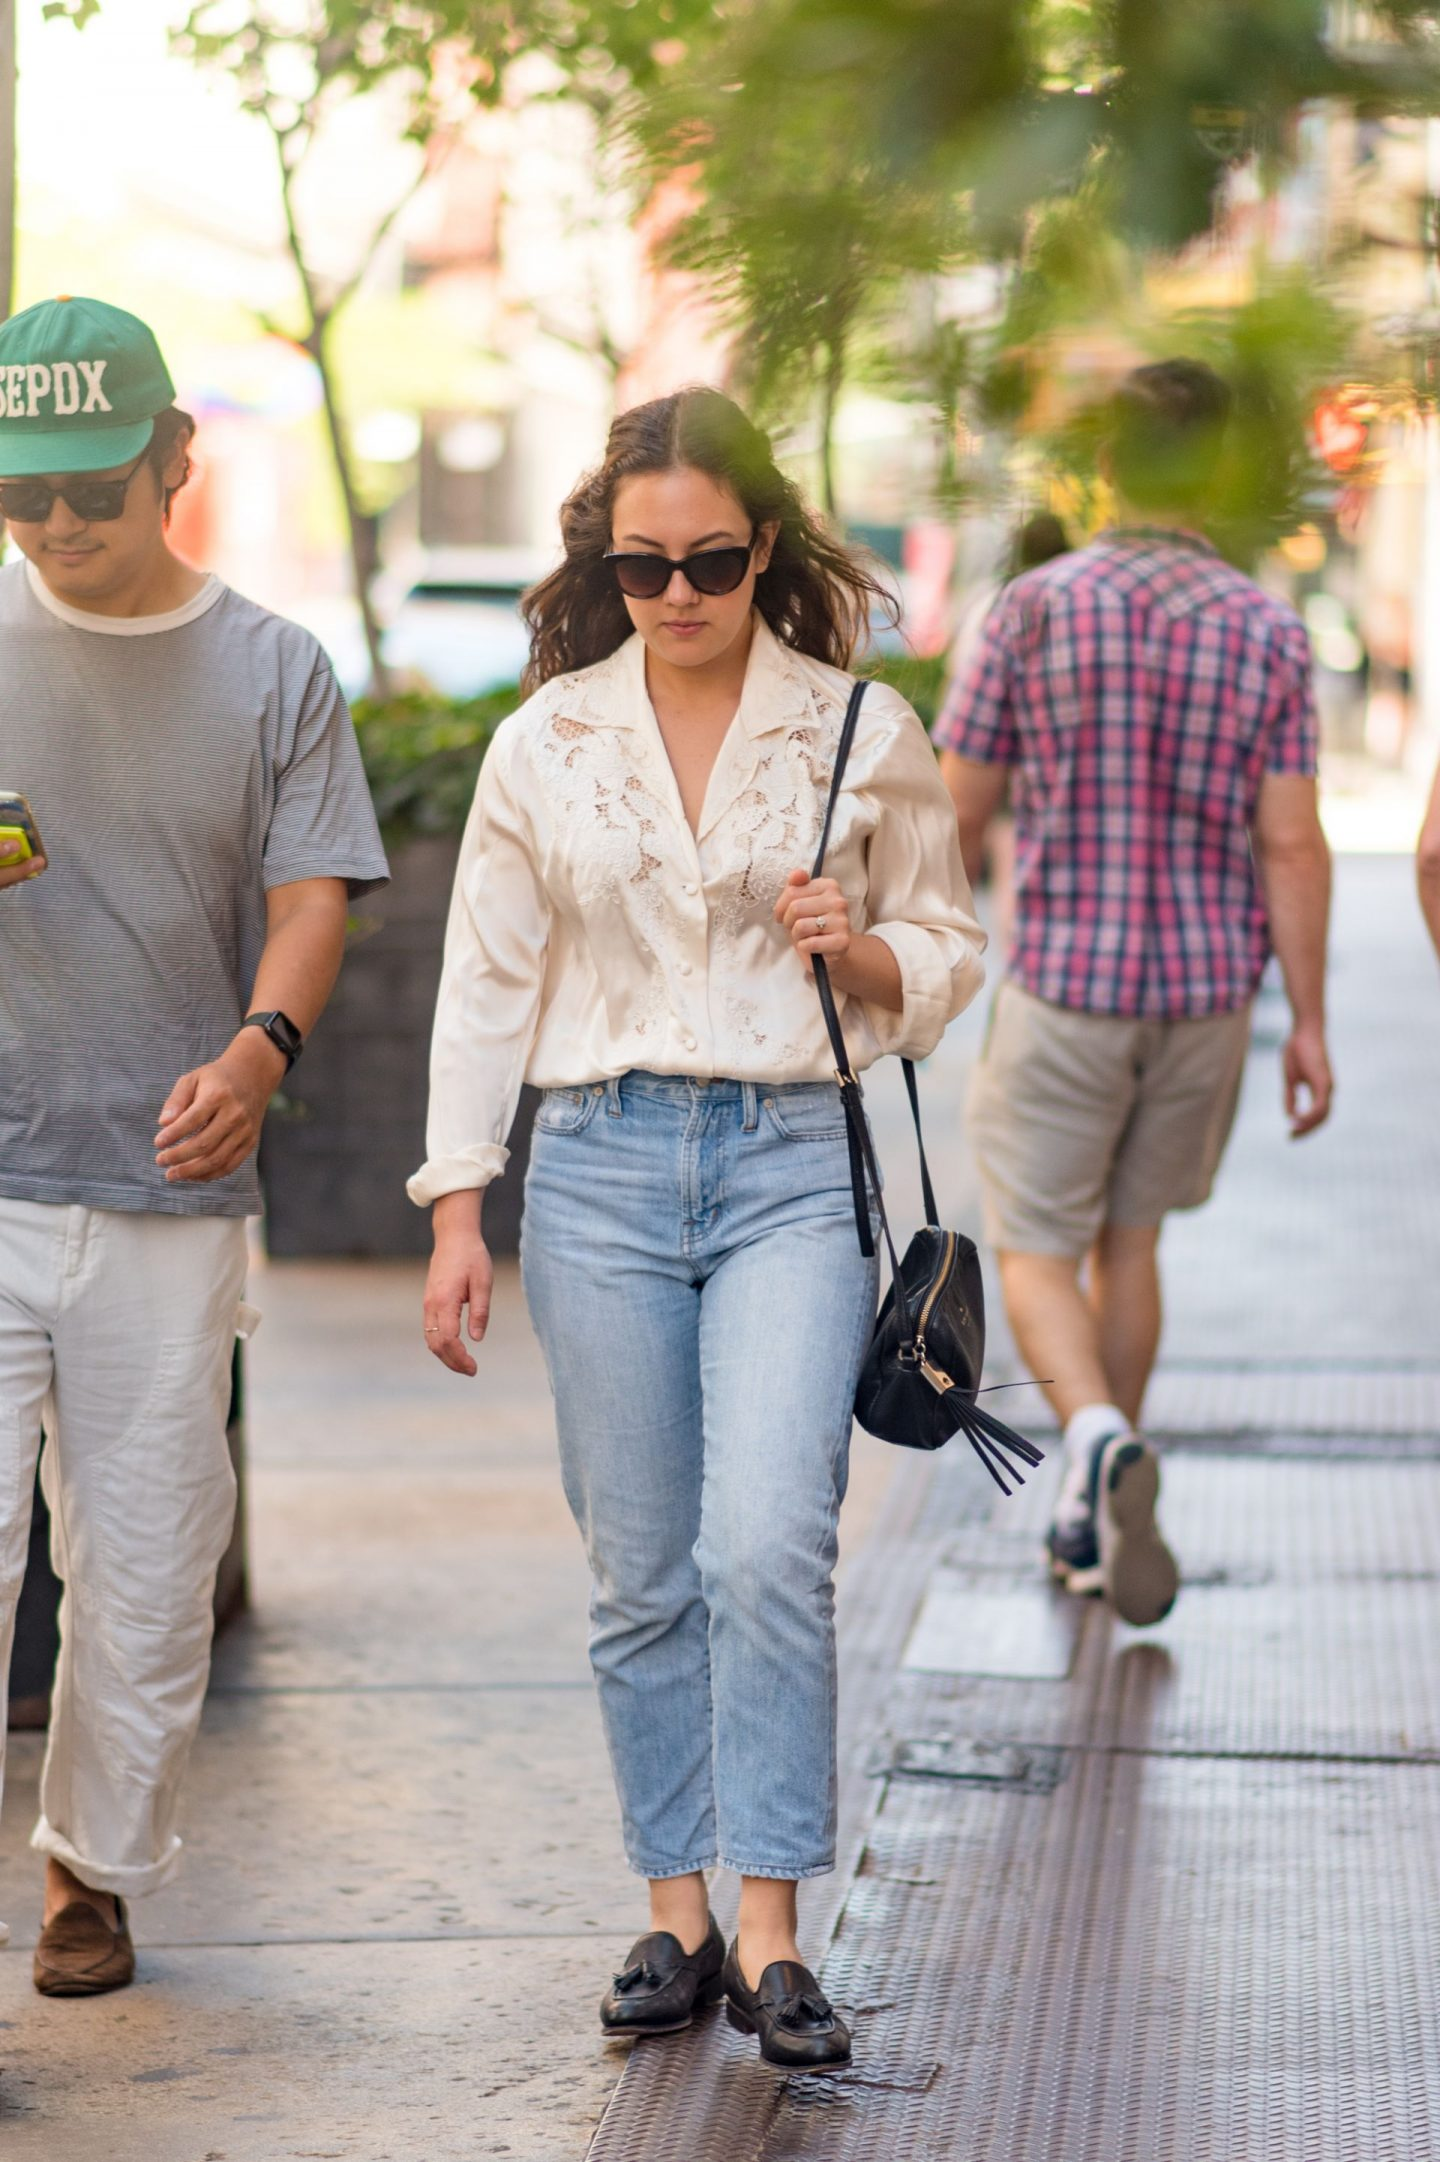 NYC street style fall outfit idea - woman wearing everyday casual fall outfit - Karya Schanilec NYC fashion photographer